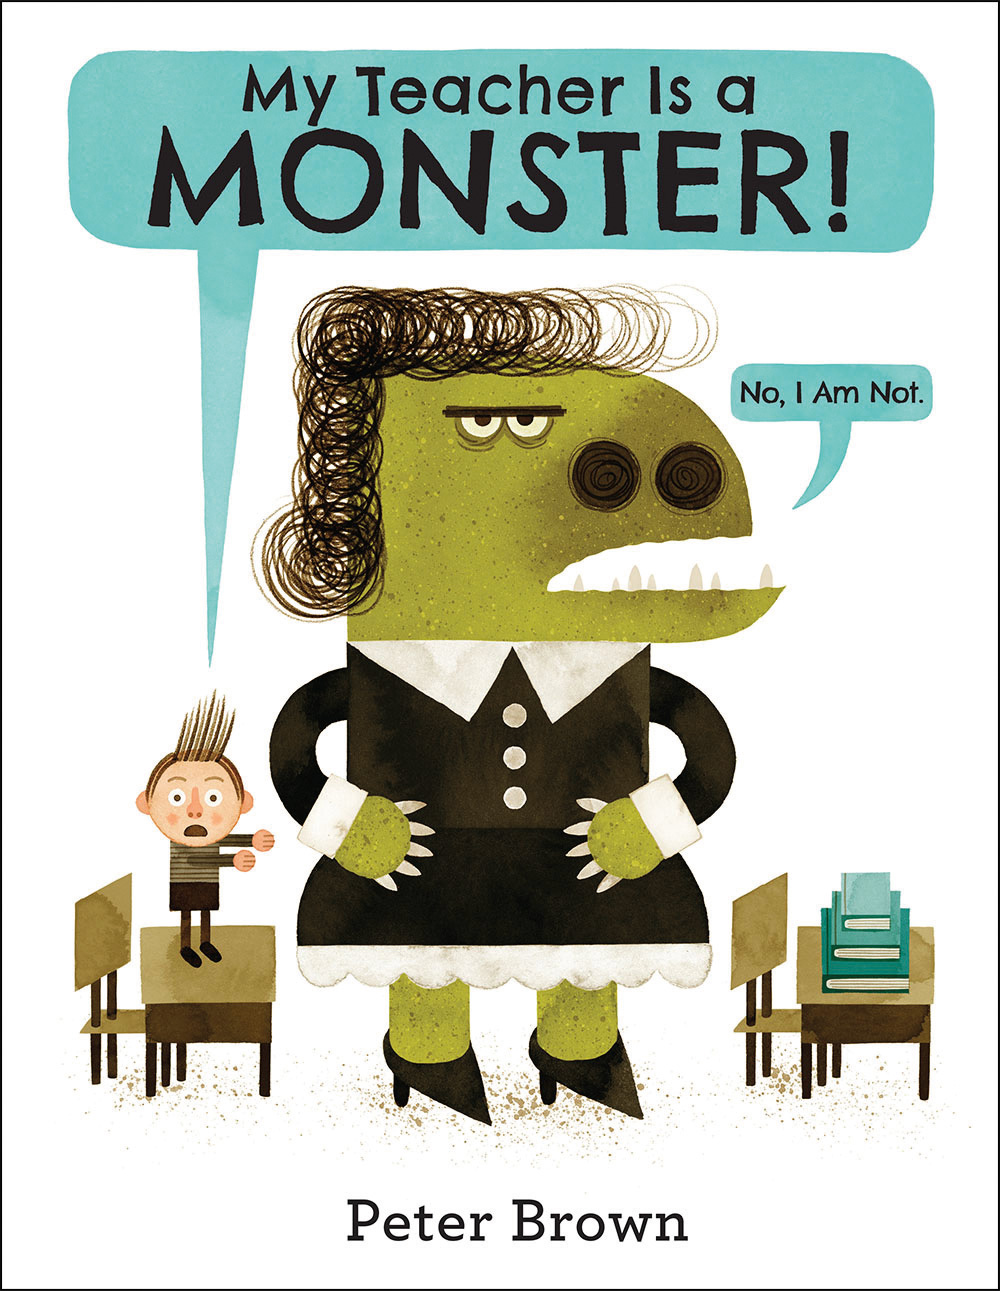 Brown, Peter 2014_07 - MY TEACHER IS A MONSTER! NO, I AM NOT - PB - RLM PR.jpg